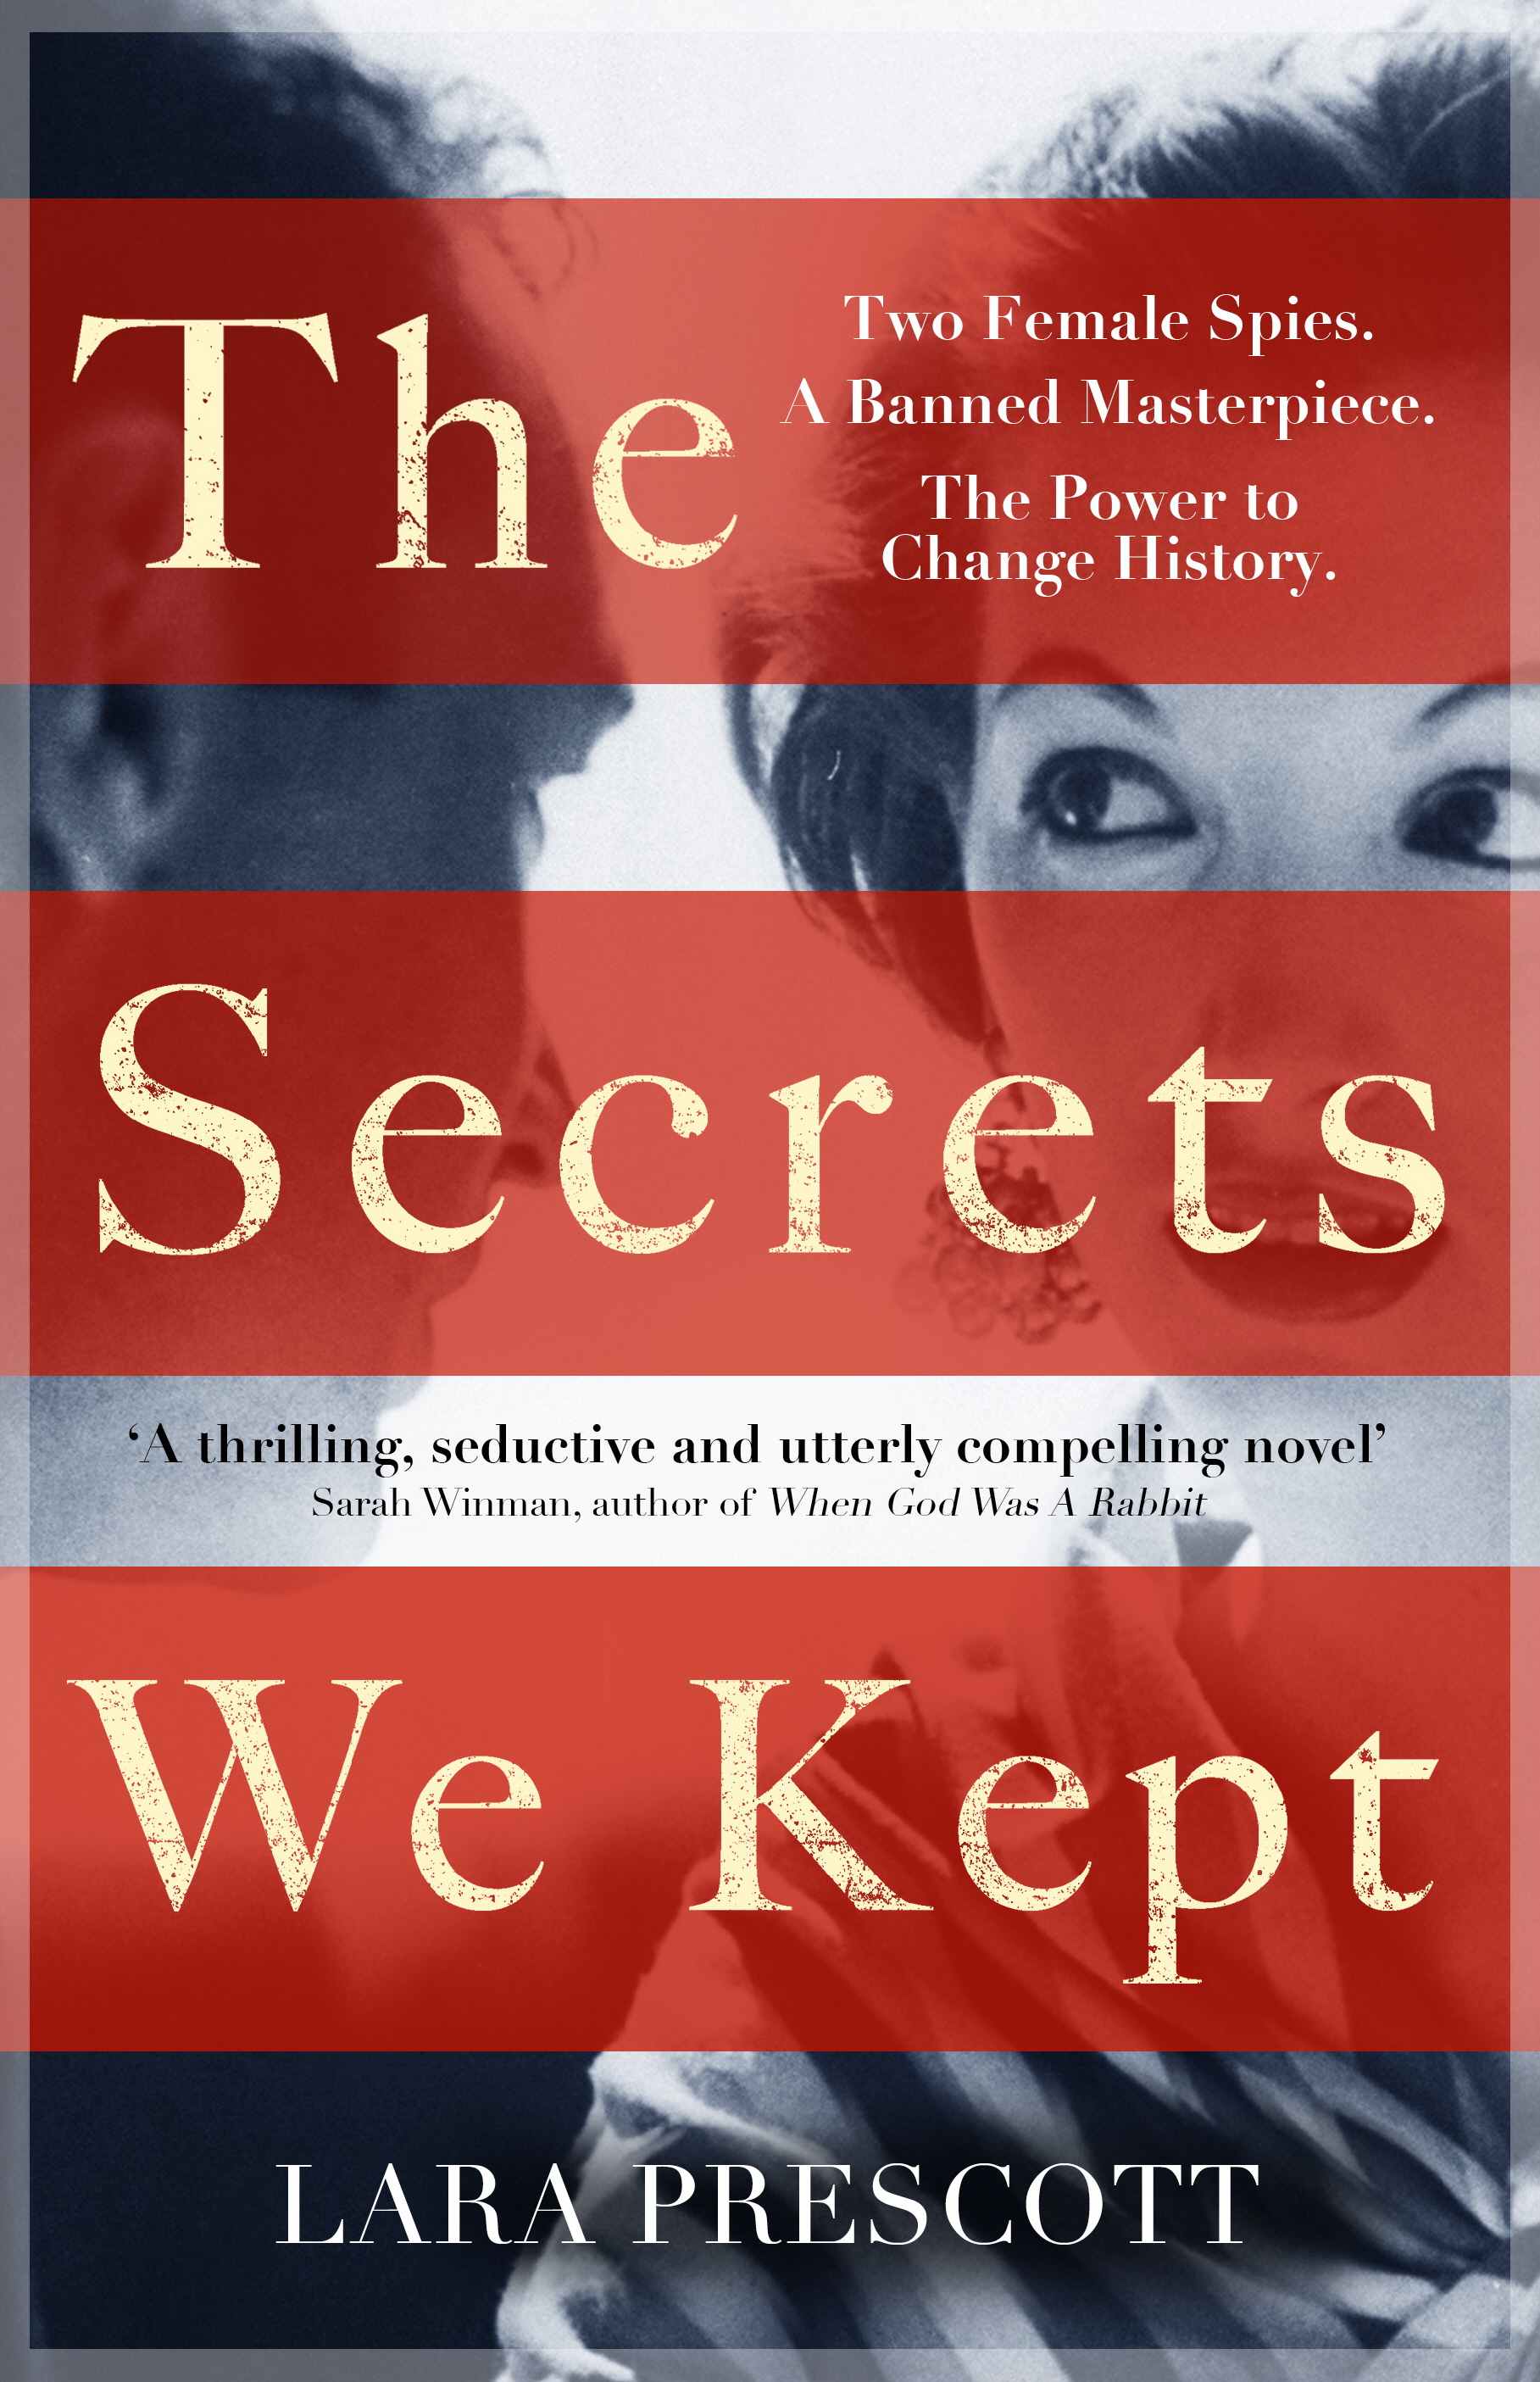 JKT  -The Secrets We Kept Jacket Image.jpg